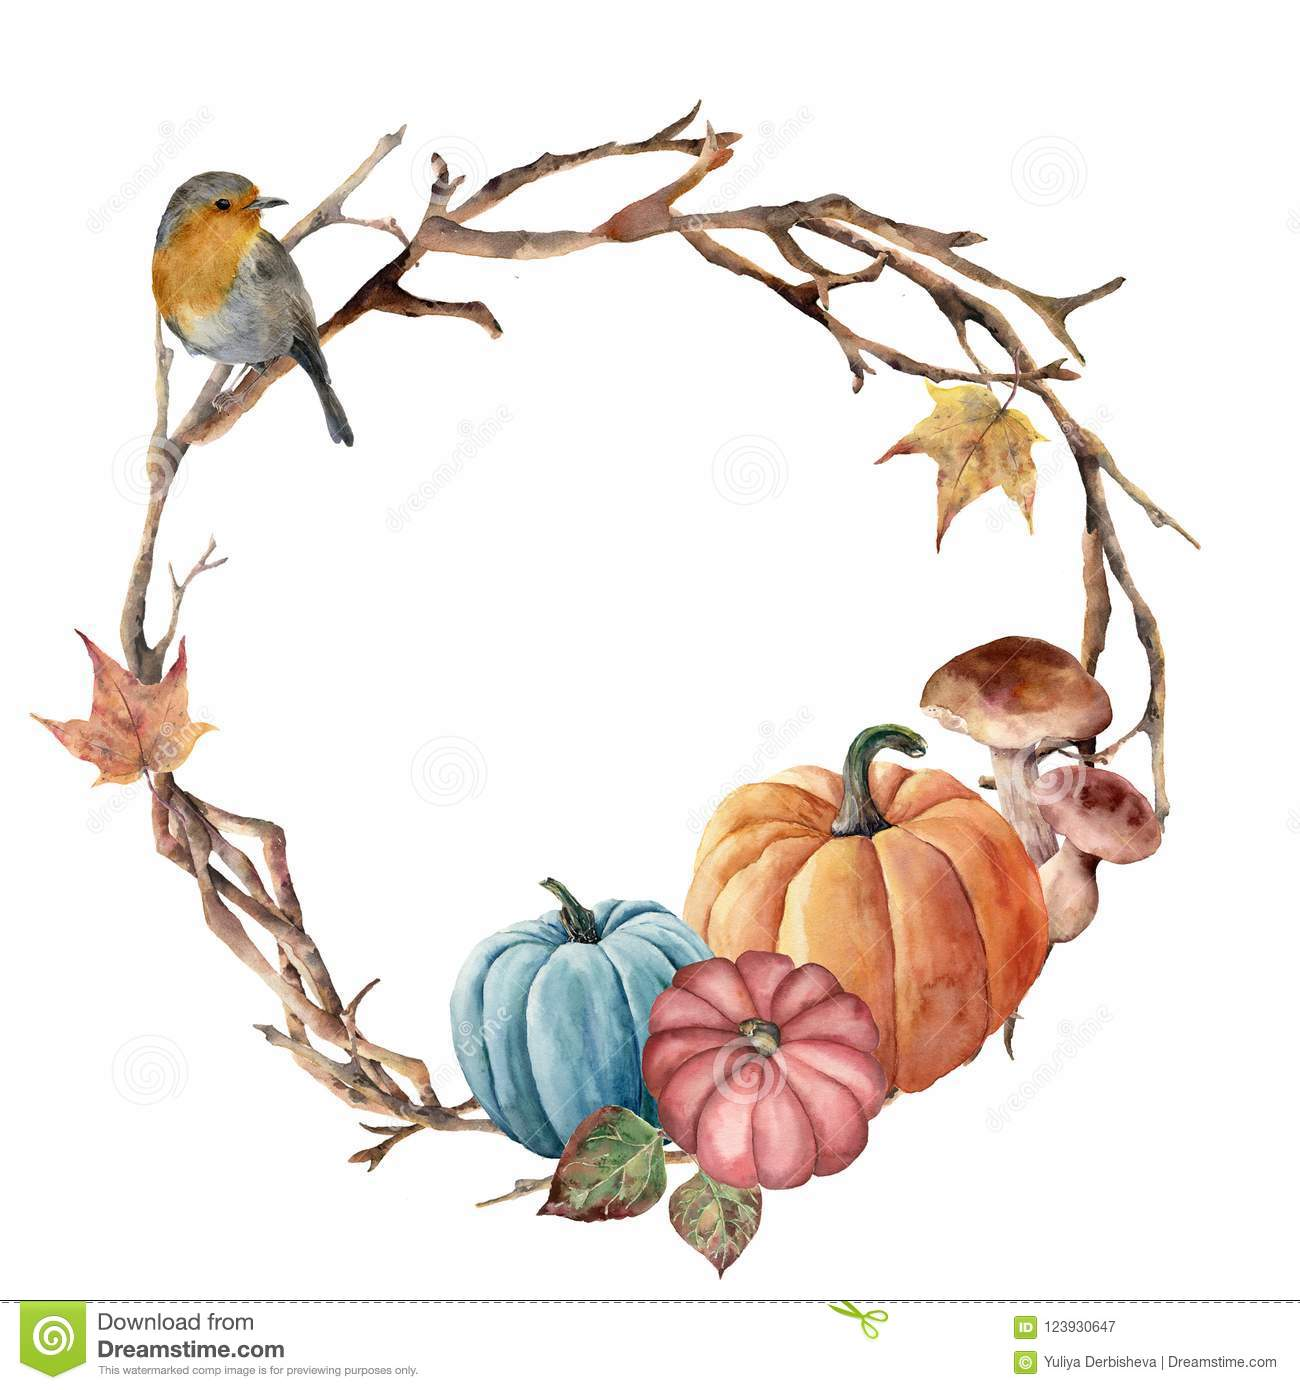 Watercolor Autumn Tree Branch Bird And Pumpkin Wreath Hand Painted Wreath With Robin Mushroom And Leaves On White Stock Illustration Illustration Of Blue Natural 123930647